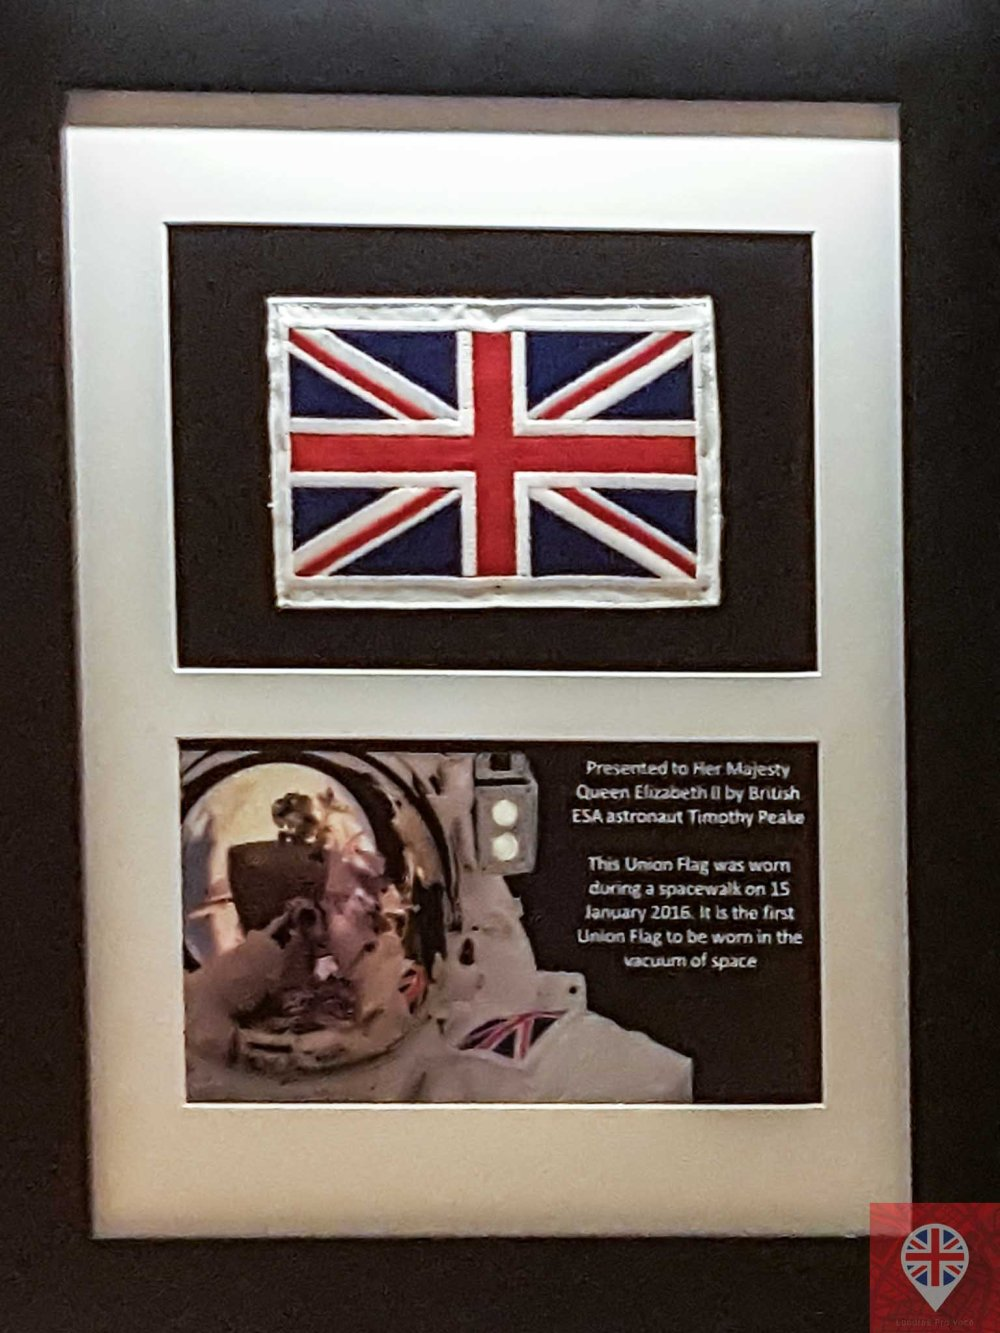 Royal Gifts union flag